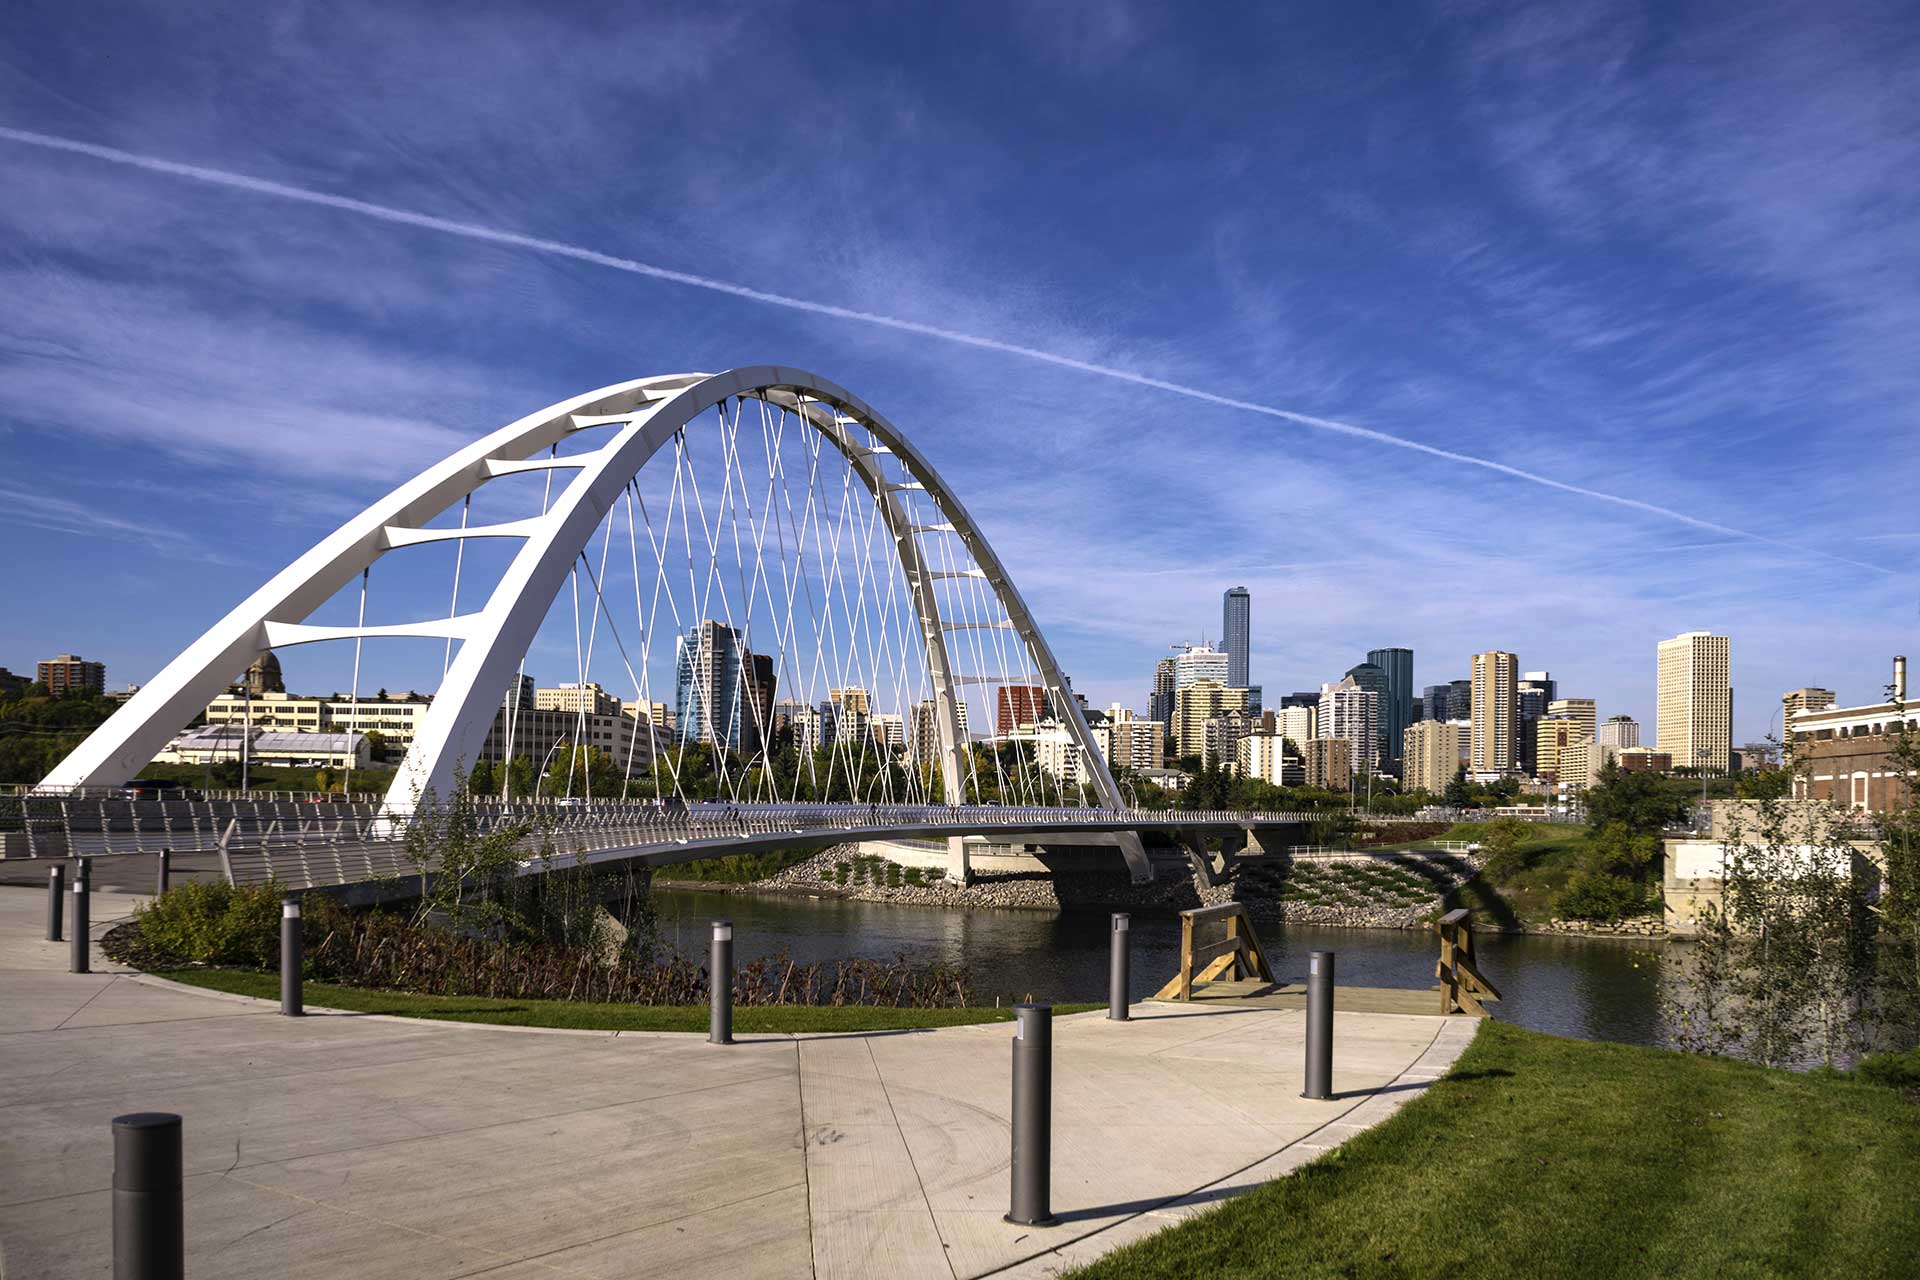 Edmonton suspension bridge and downtown during daytime.